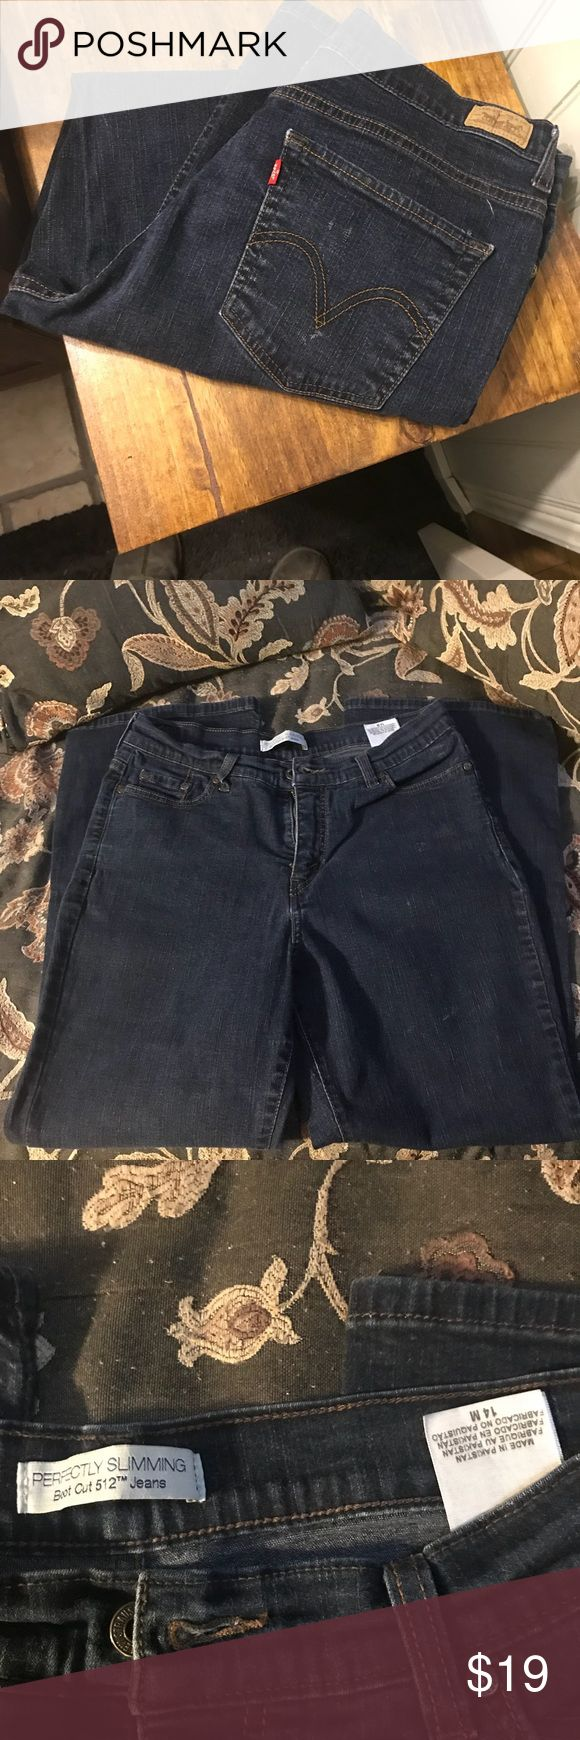 "Levi 512 size 14m. Women's jeans. Dark blue denim Levi 512 size 14m. Waist laying flat approximately 16"", but has a bunch of stretch!!! 28"" inseam. Levi's Jeans Boot Cut"